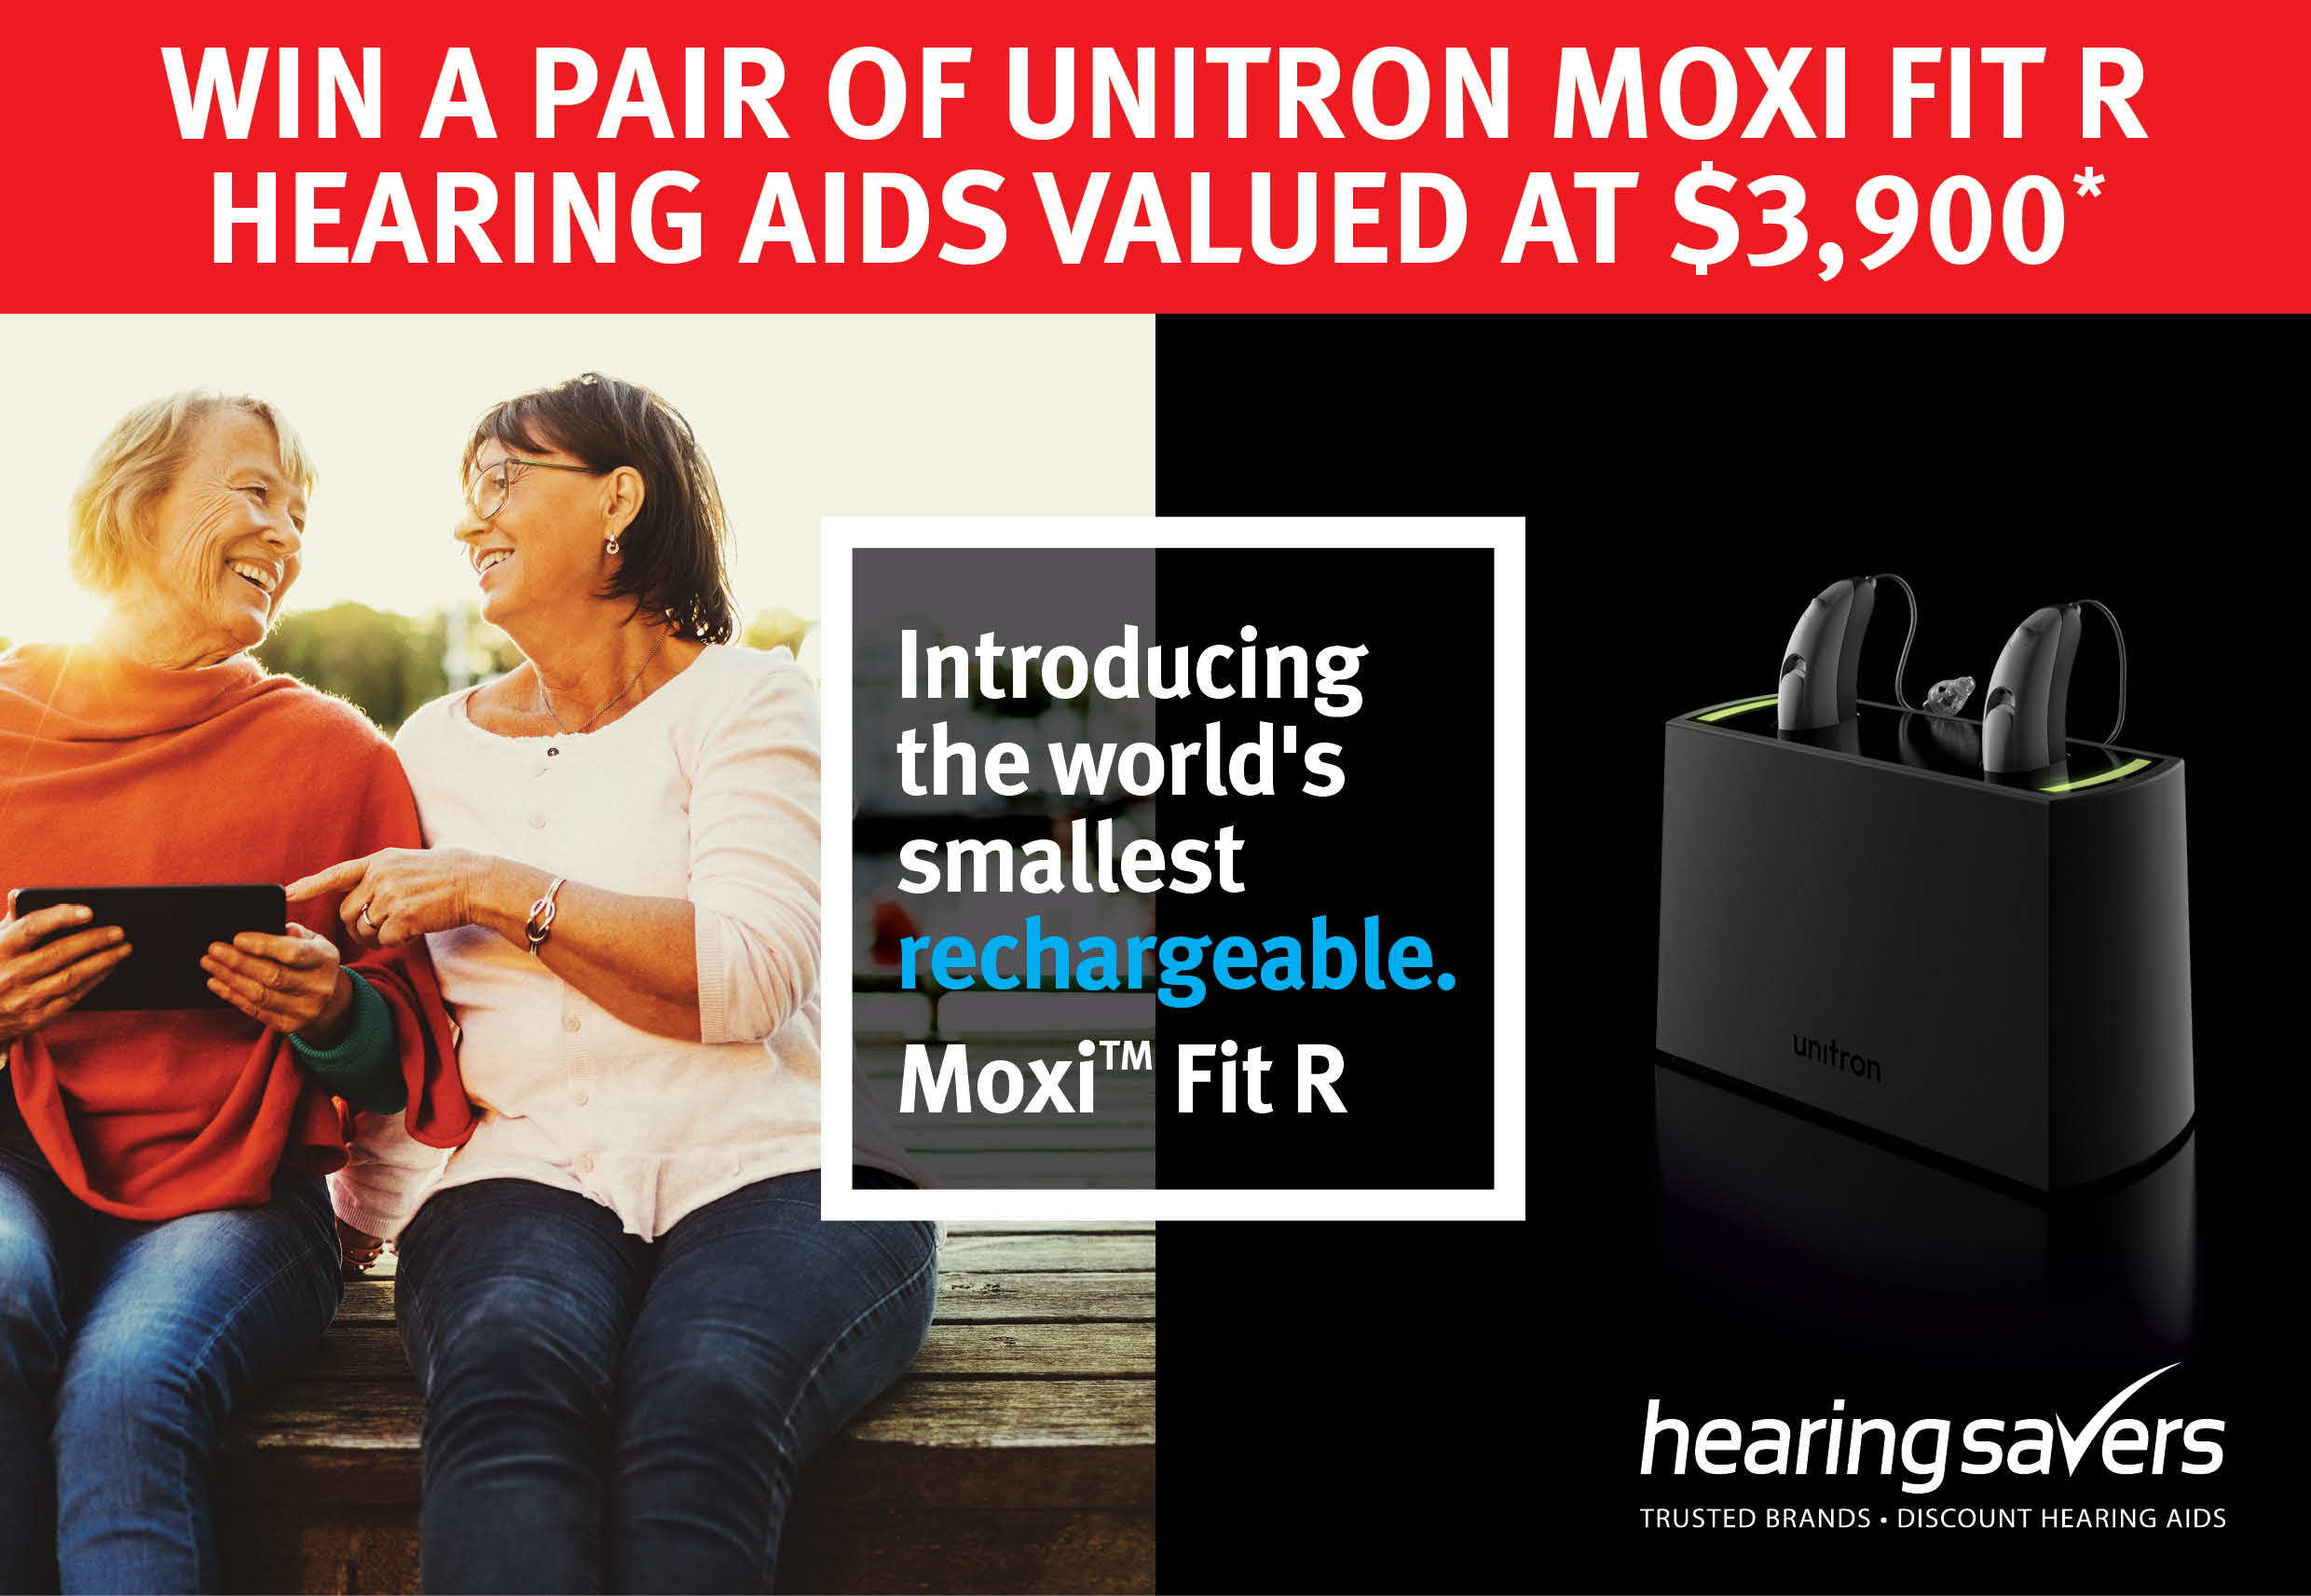 Win a pair of hearing aids valued at $3900